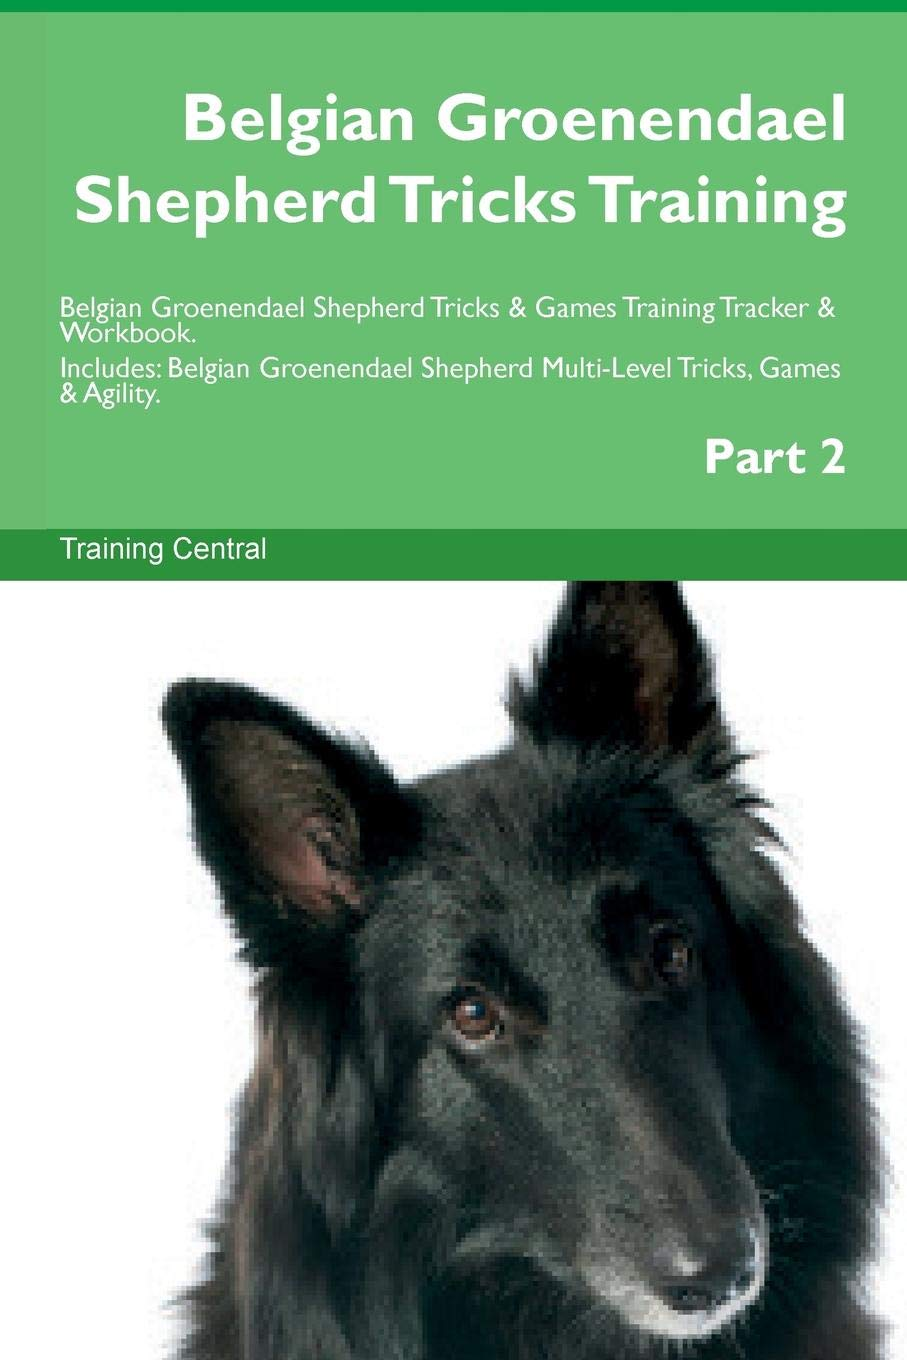 Belgian Groenendael Shepherd Tricks Training Belgian Groenendael Shepherd Tricks & Games Training Tracker & Workbook…